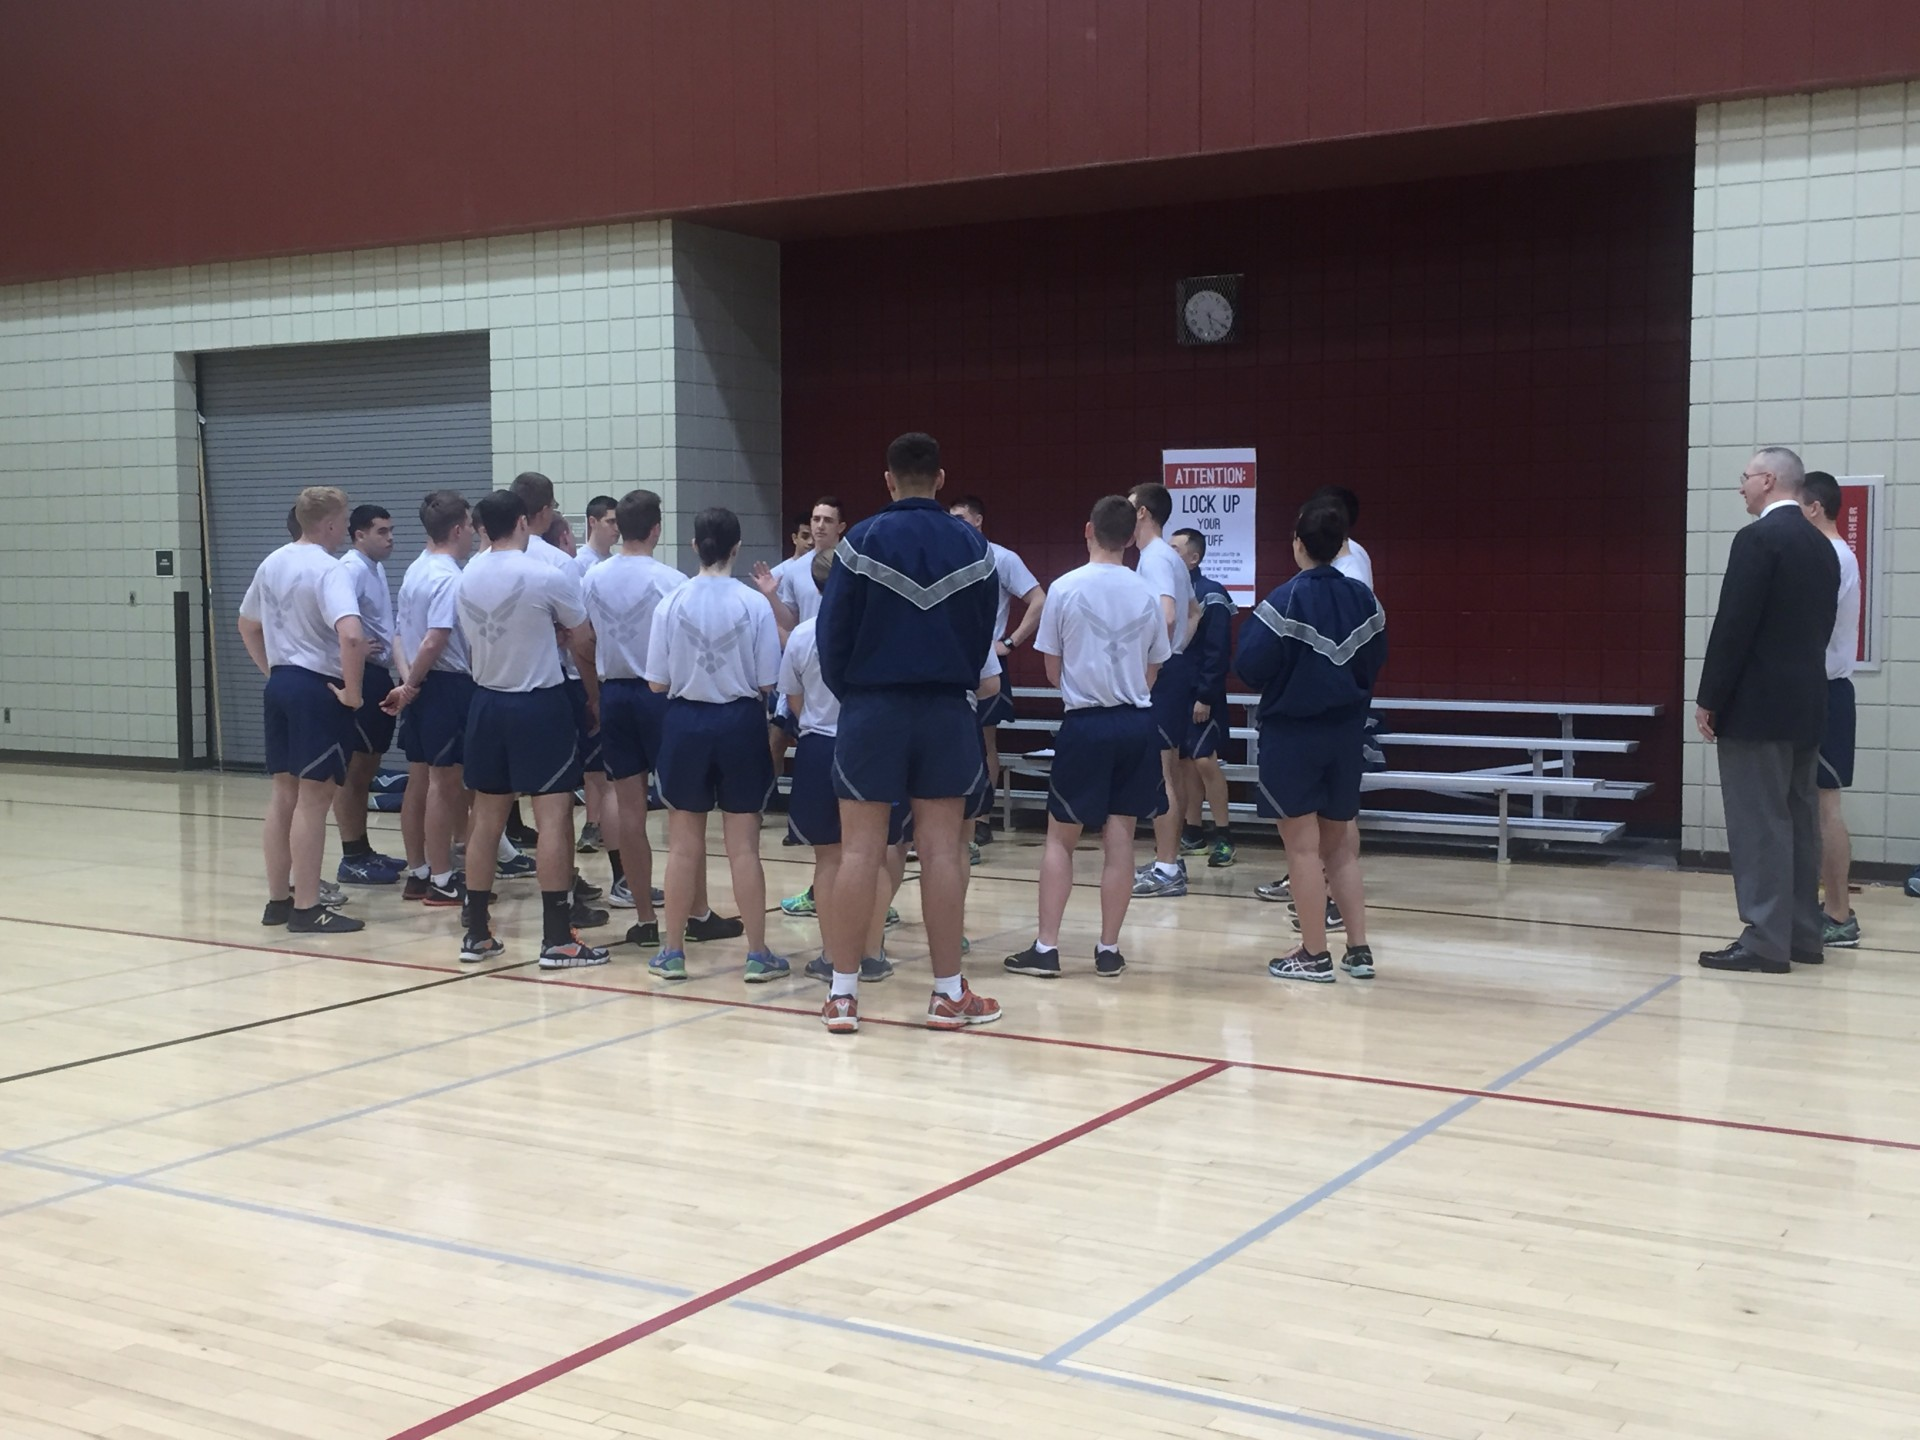 Air Force ROTC members group up during Friday's dodgeball game against the Army ROTC. | Photo by Amanda Bobo